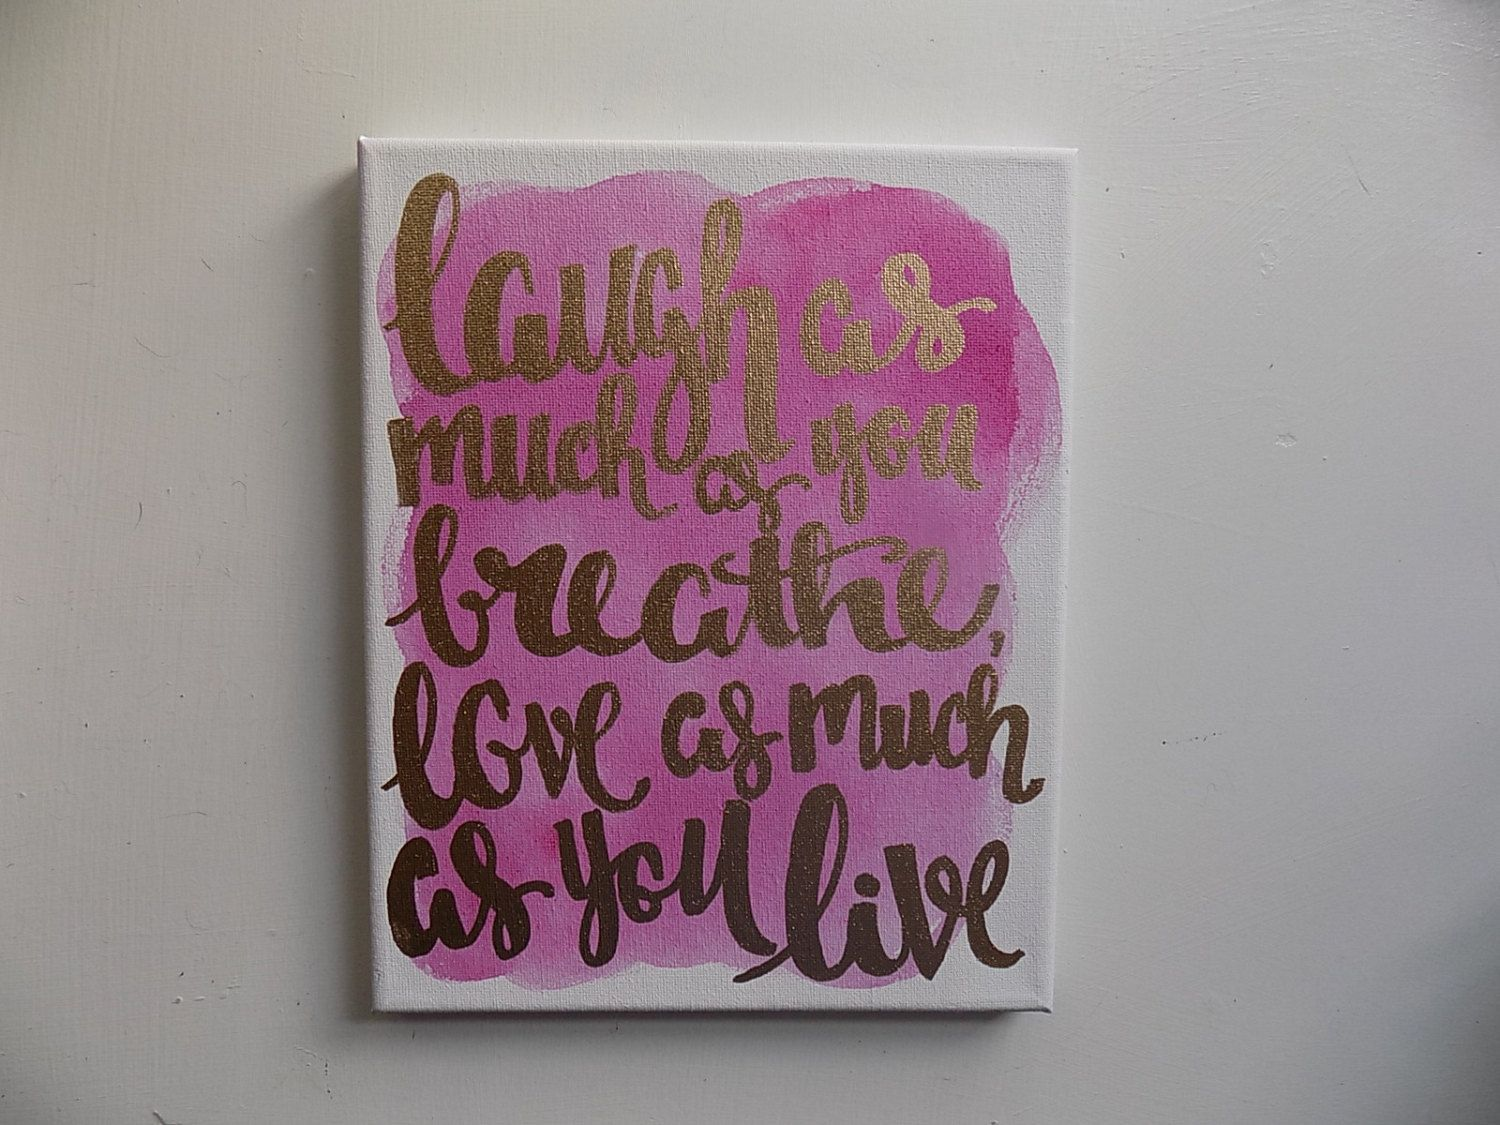 Laugh as much as you breath love as much as you live canvas quote art watercolor home decor quotes on canvas Pink gold quote canvas art by ArtOfWordsBoutique on Etsy